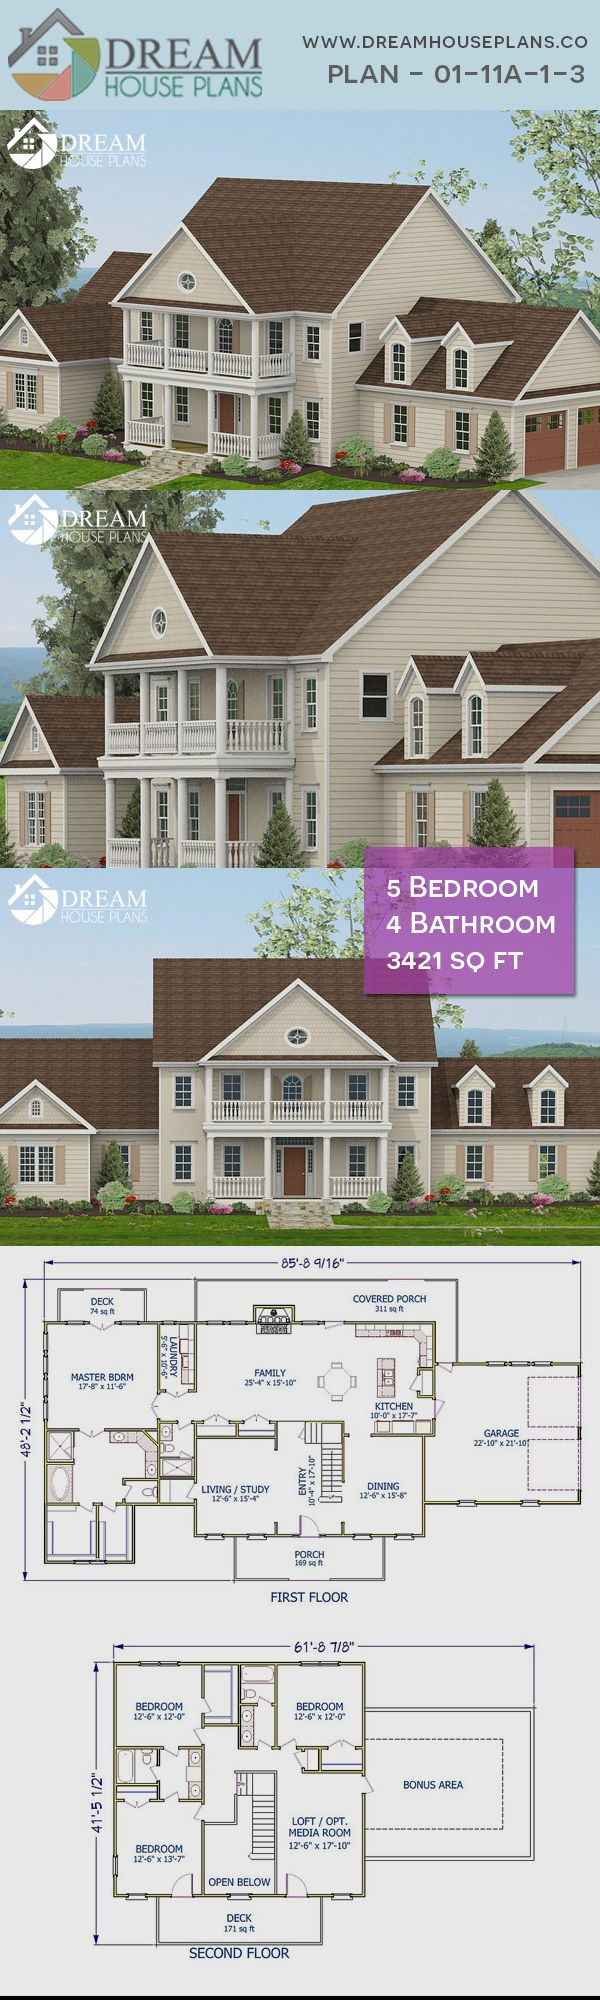 Dream House Plans Simple Yet Luxury Colonial 5 Bedroom 3421 Sq Ft House Plan With Basement We Dream House Plans Traditional House Plans Porch House Plans